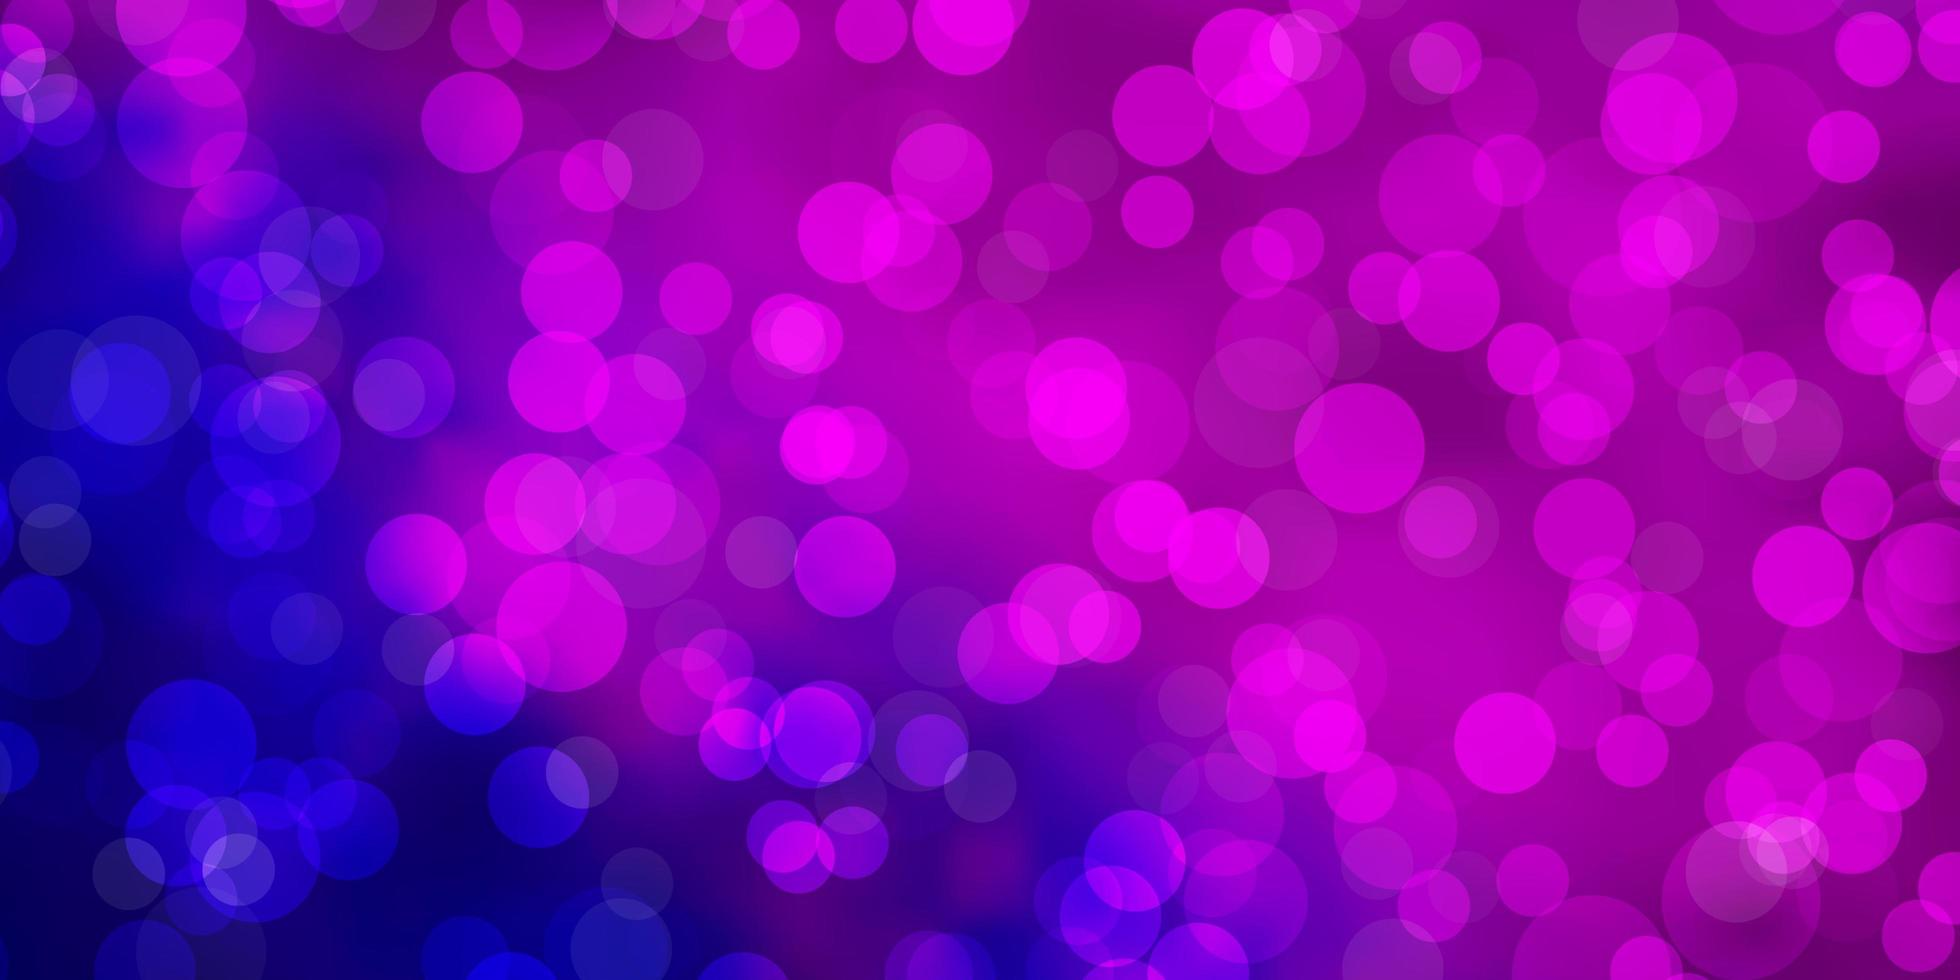 Pink, Blue background with bubbles. vector